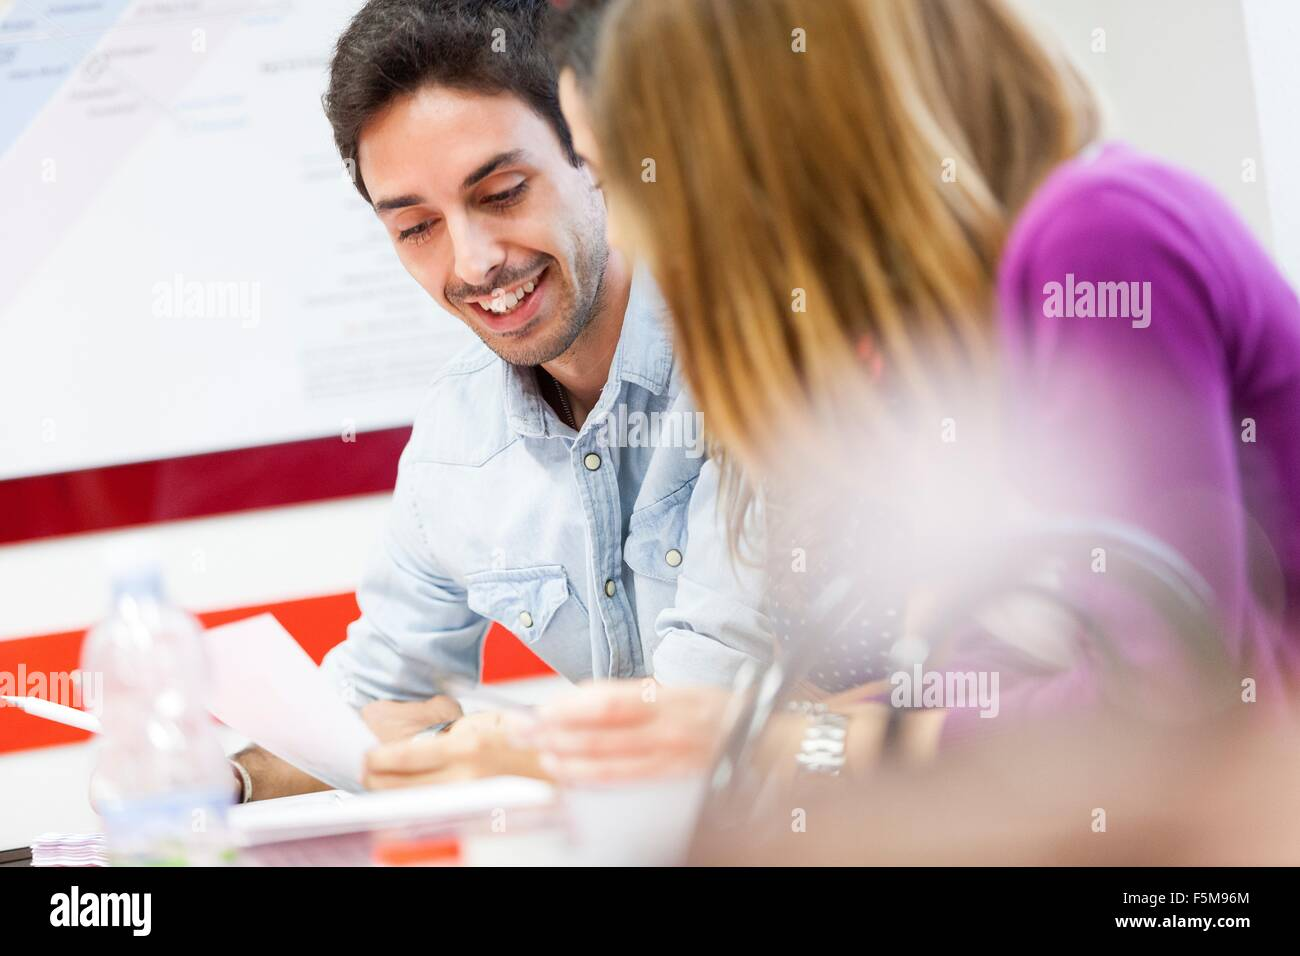 Man and woman sitting together, laughing - Stock Image